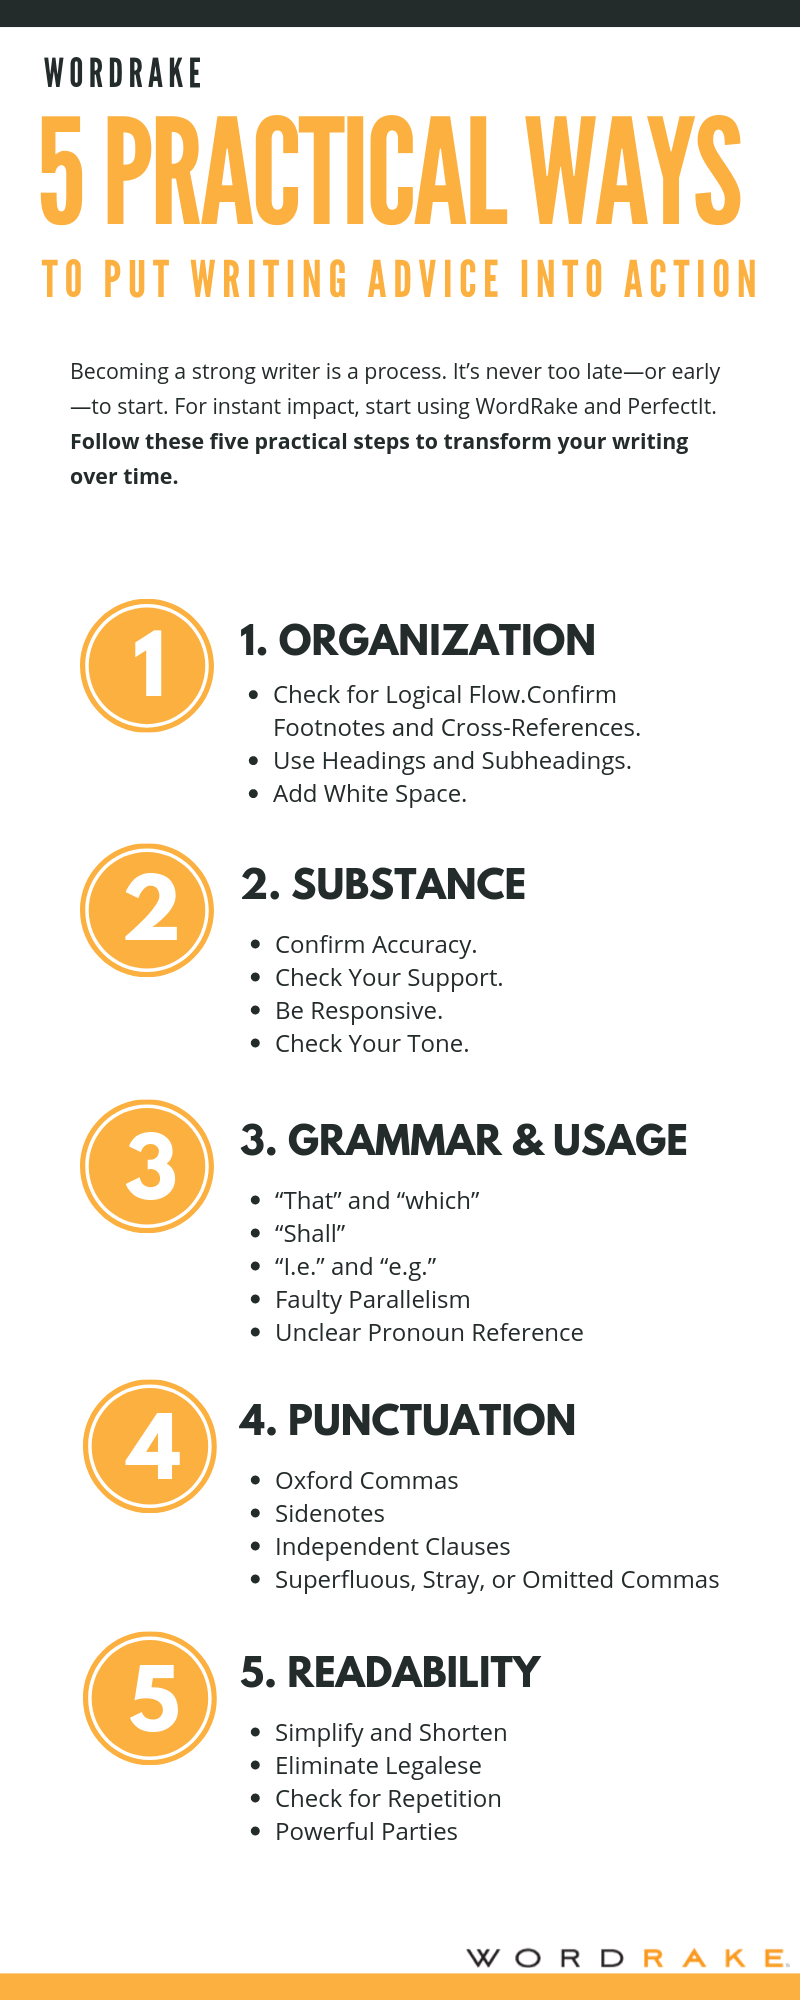 Checklist_5 Practical Ways to Put Writing Advice Into Action (Long)